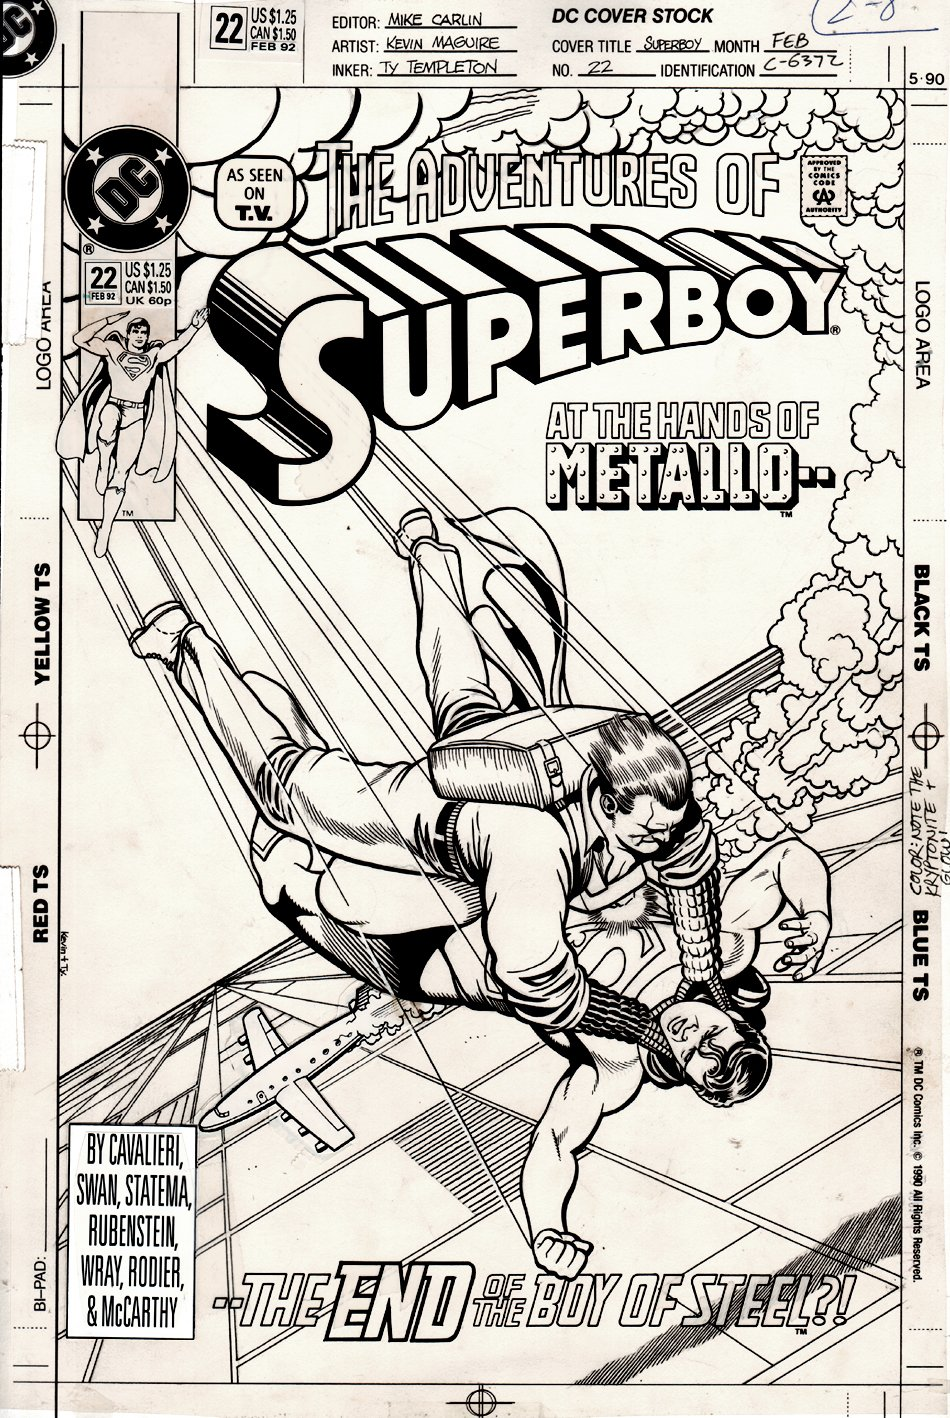 Adventures of Superboy #22 Cover (1991)